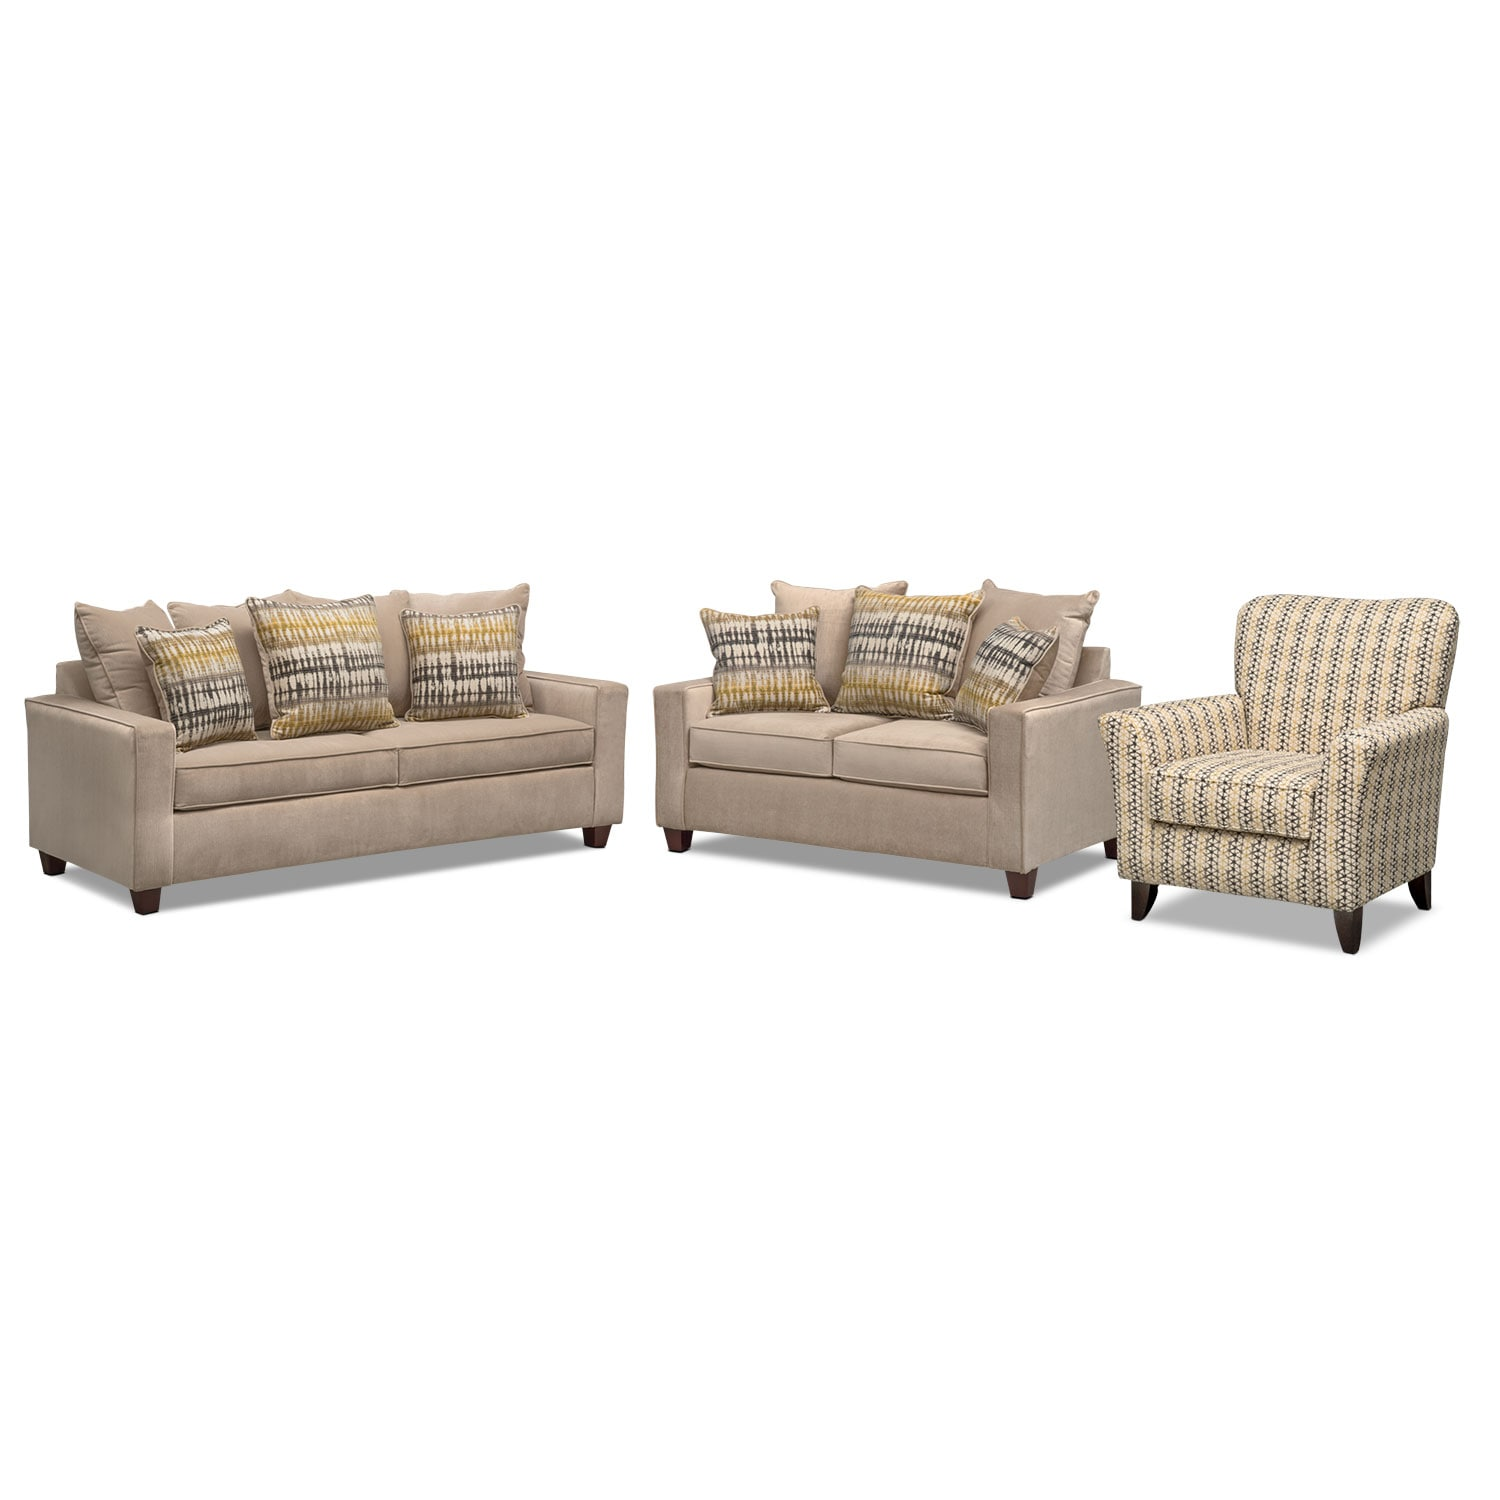 Bryden Queen Innerspring Sleeper Sofa, Loveseat and Accent Chair Set - Beige